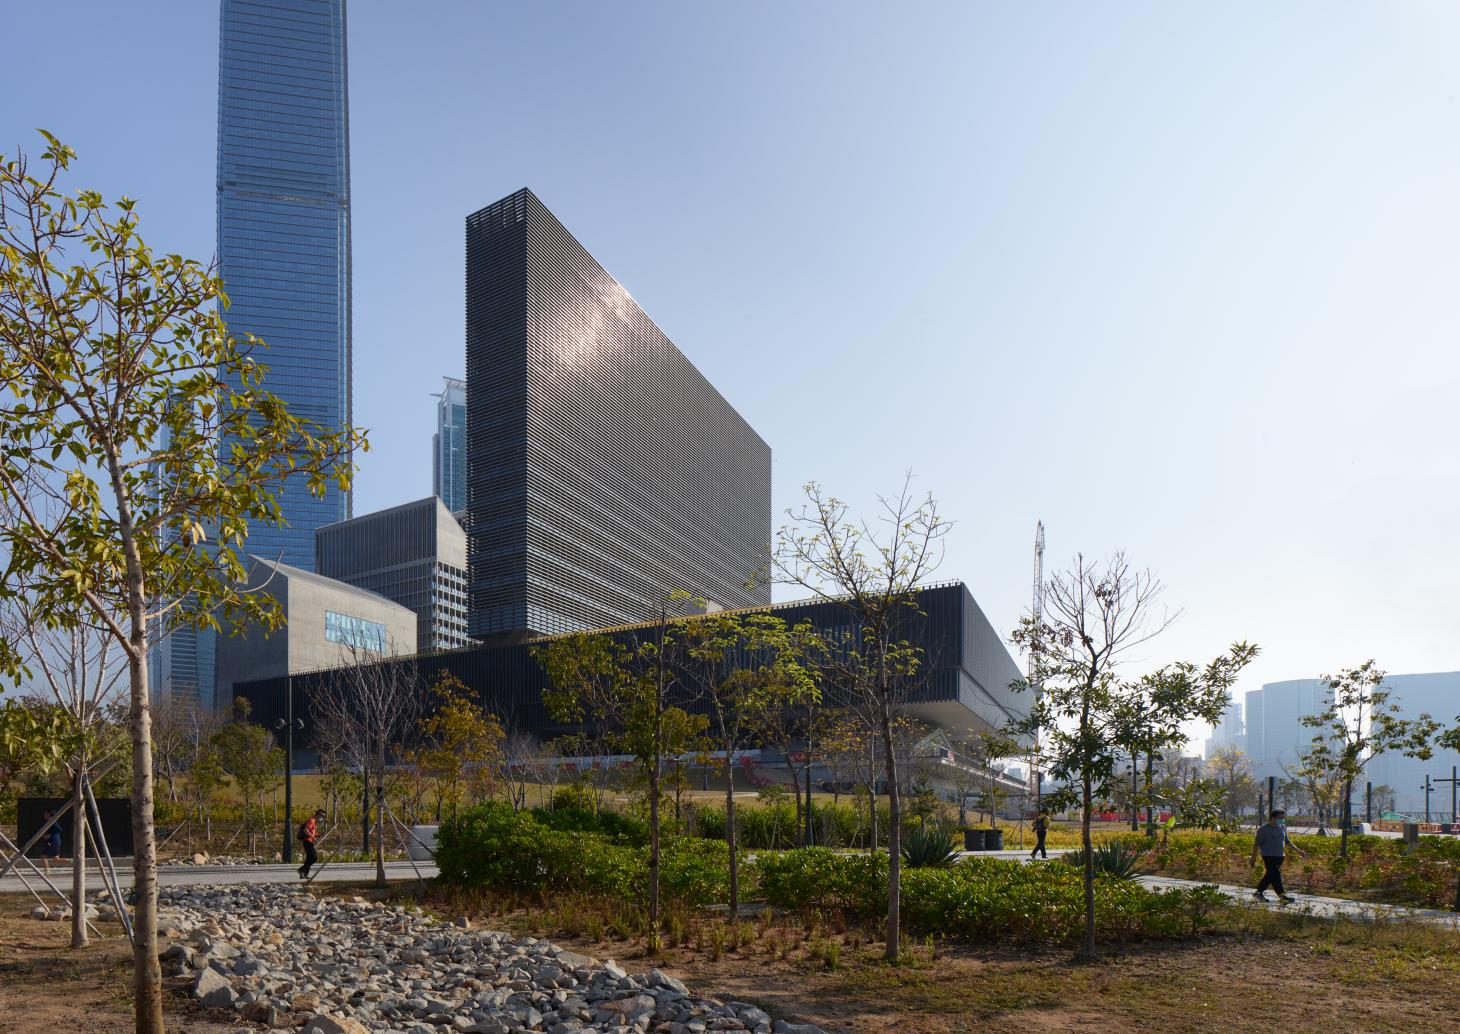 M+ Museum facade in Hong Kong, as featured from street view